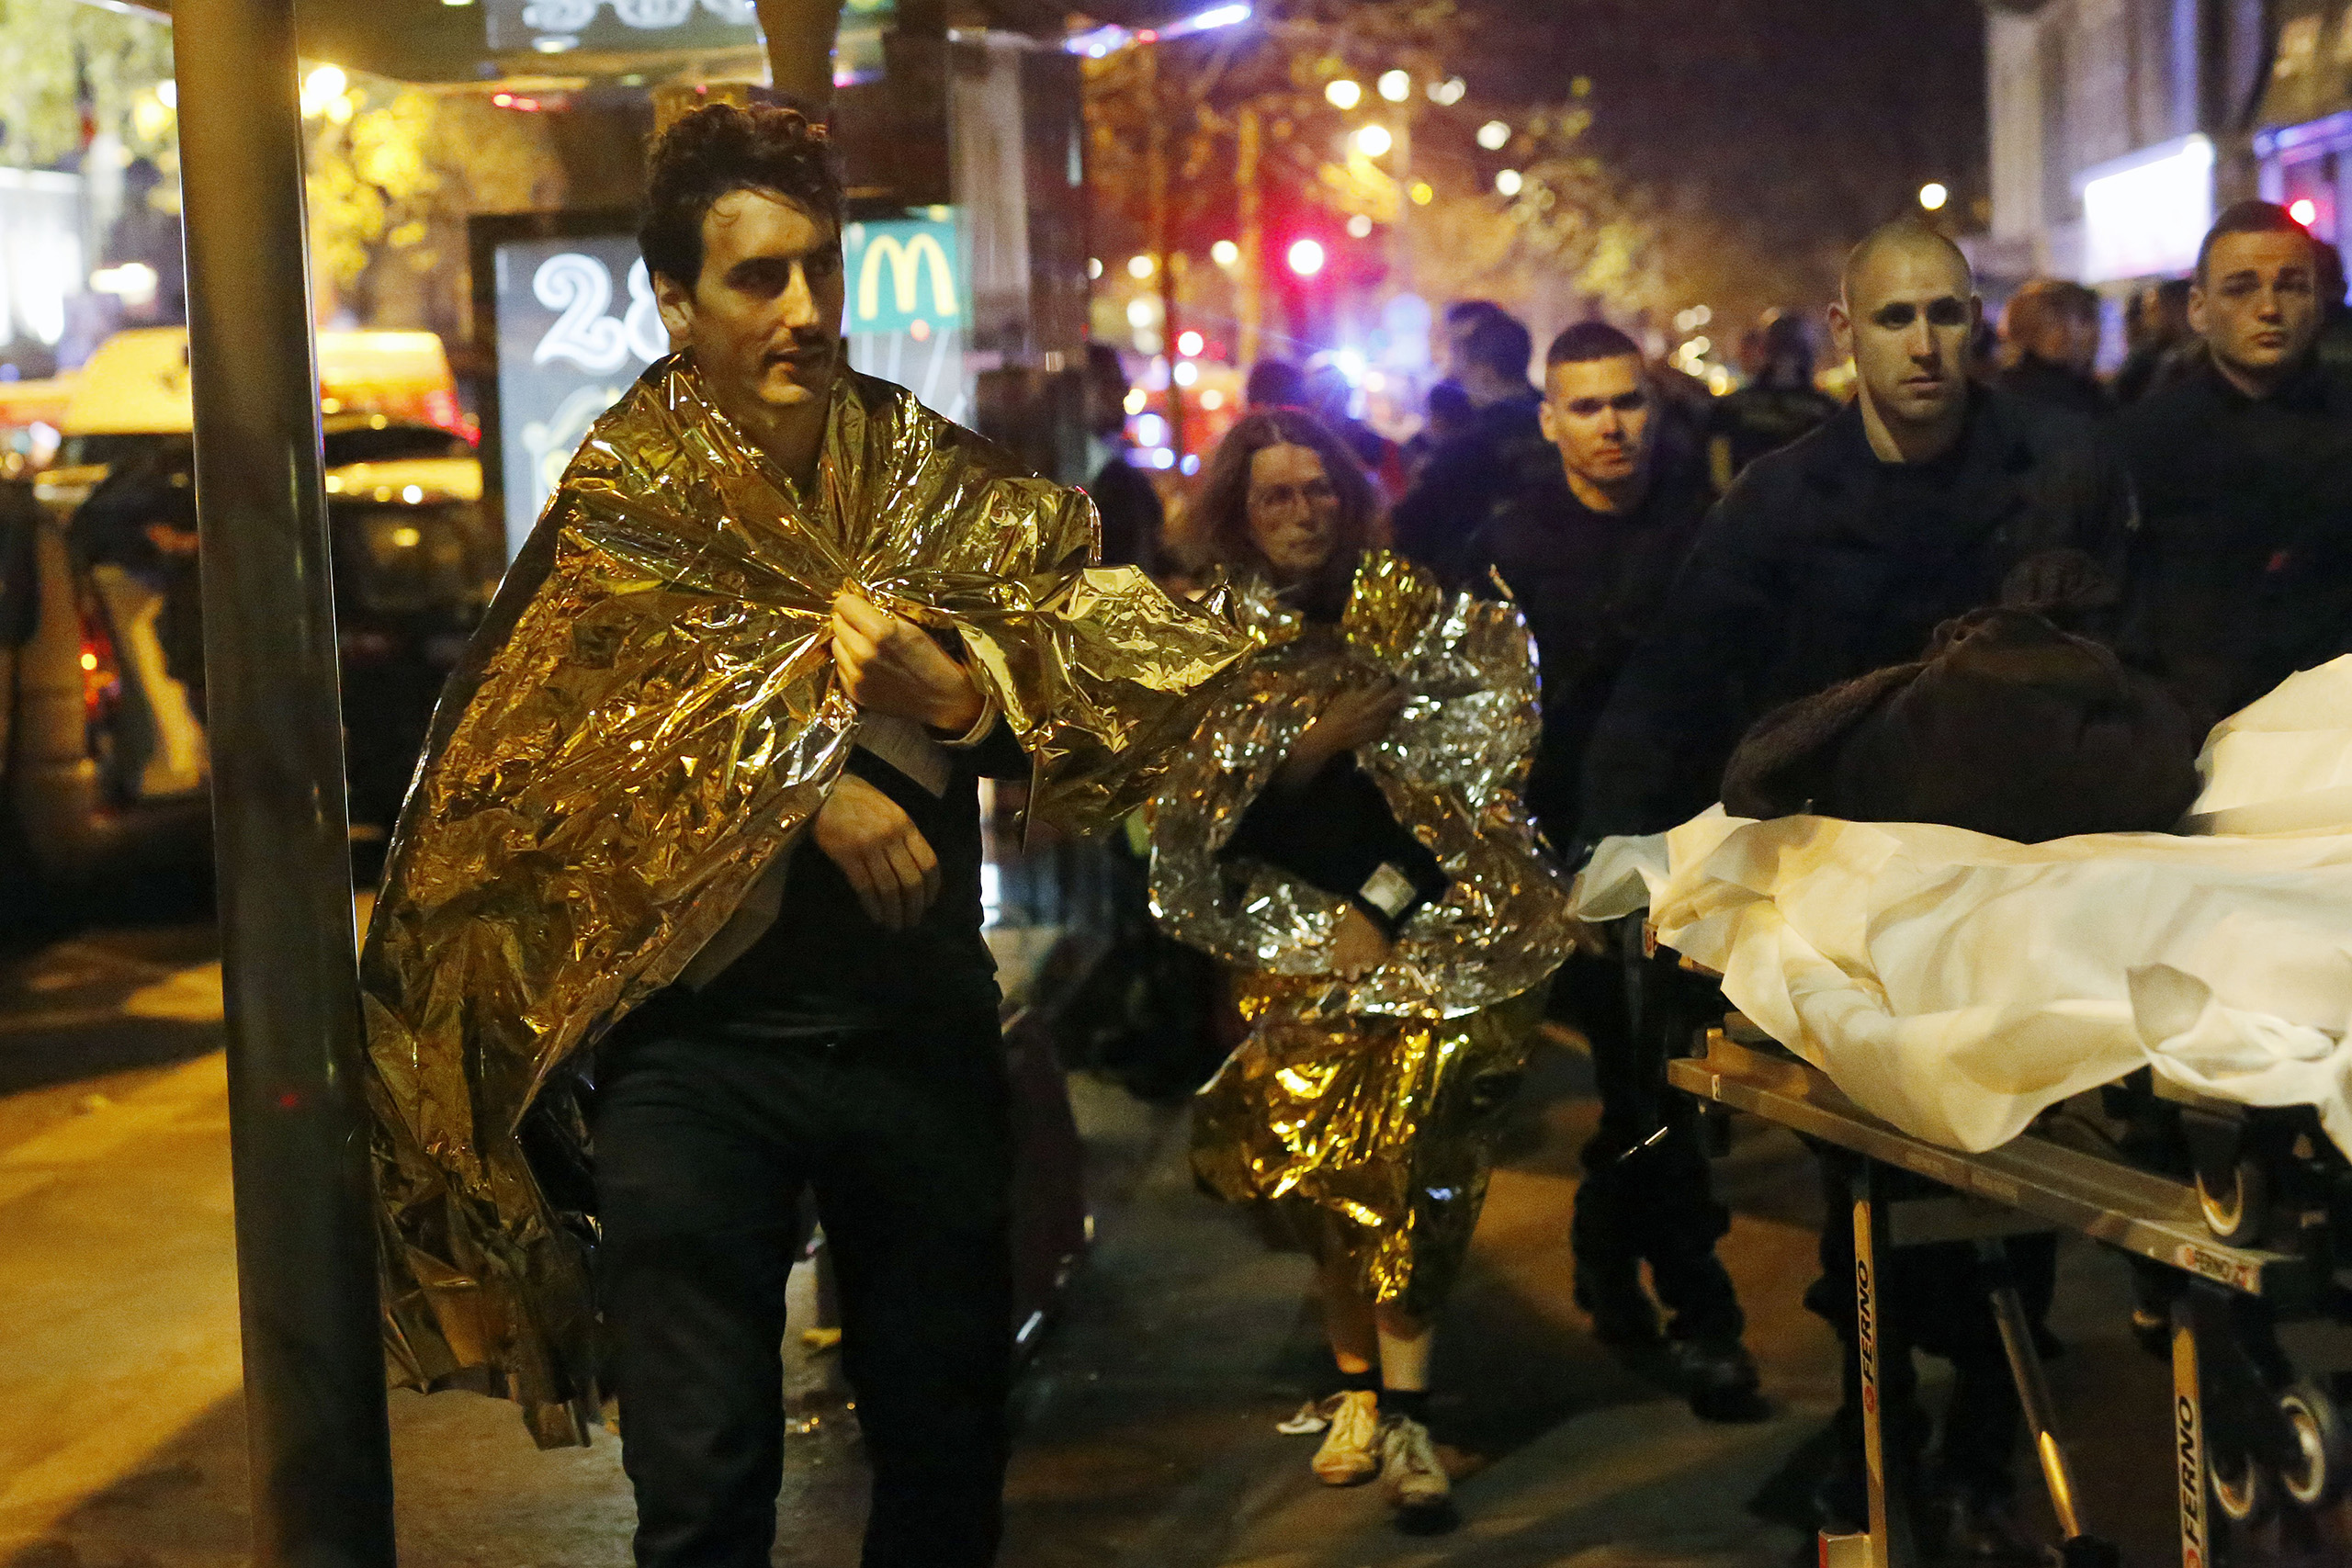 Victims walk away outside the Bataclan theater in Paris on Nov. 13, 2015.